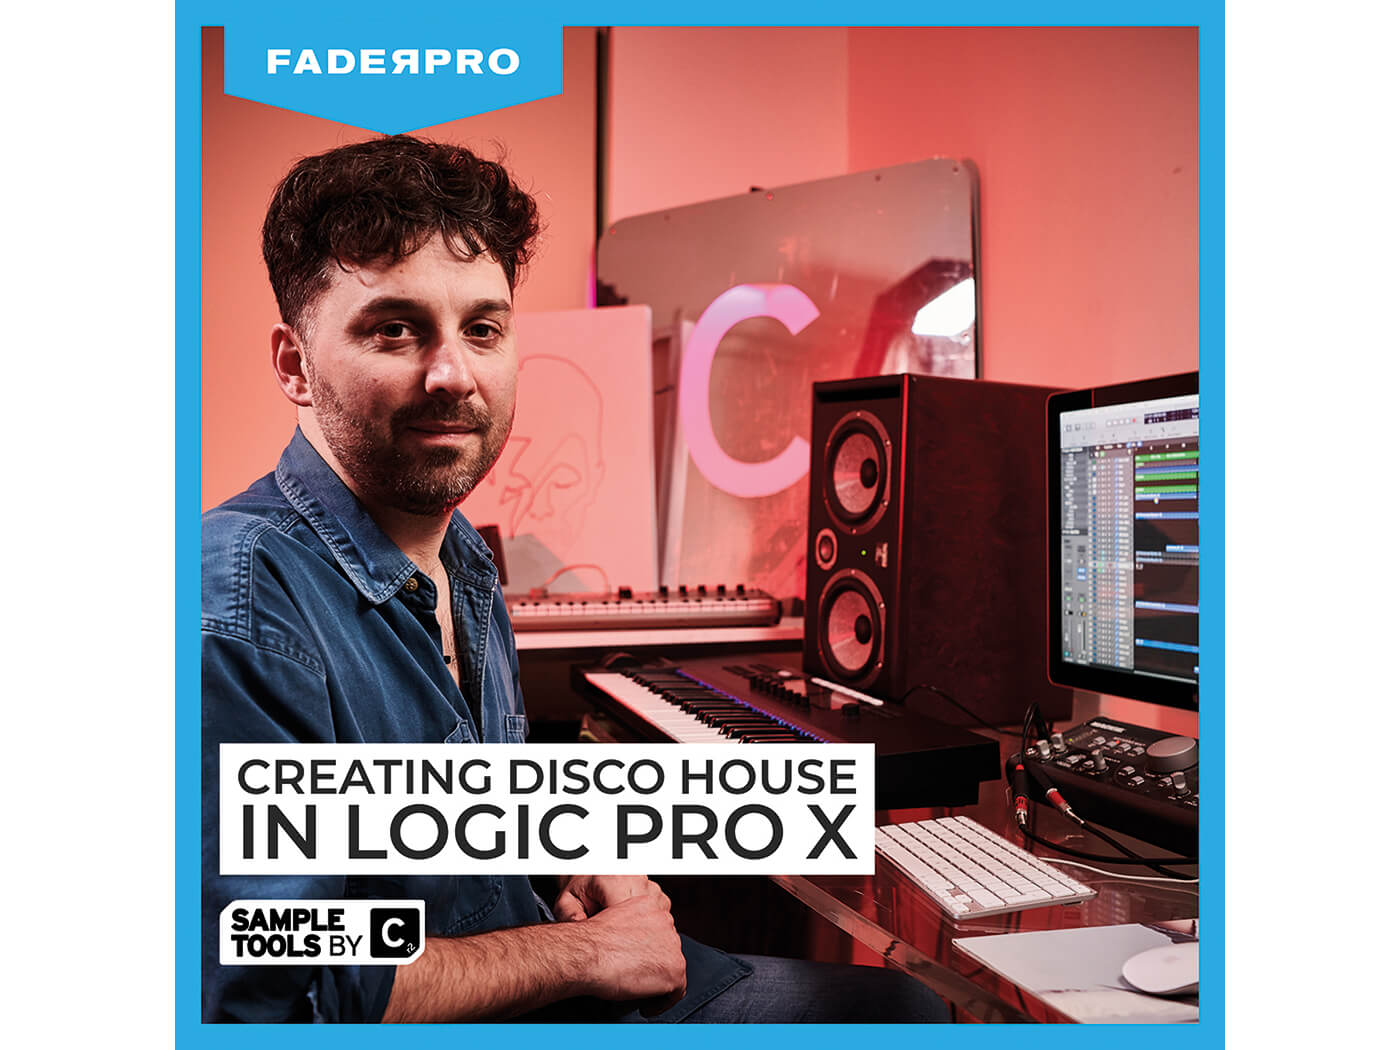 FaderPro Creating Disco House In Logic Pro X